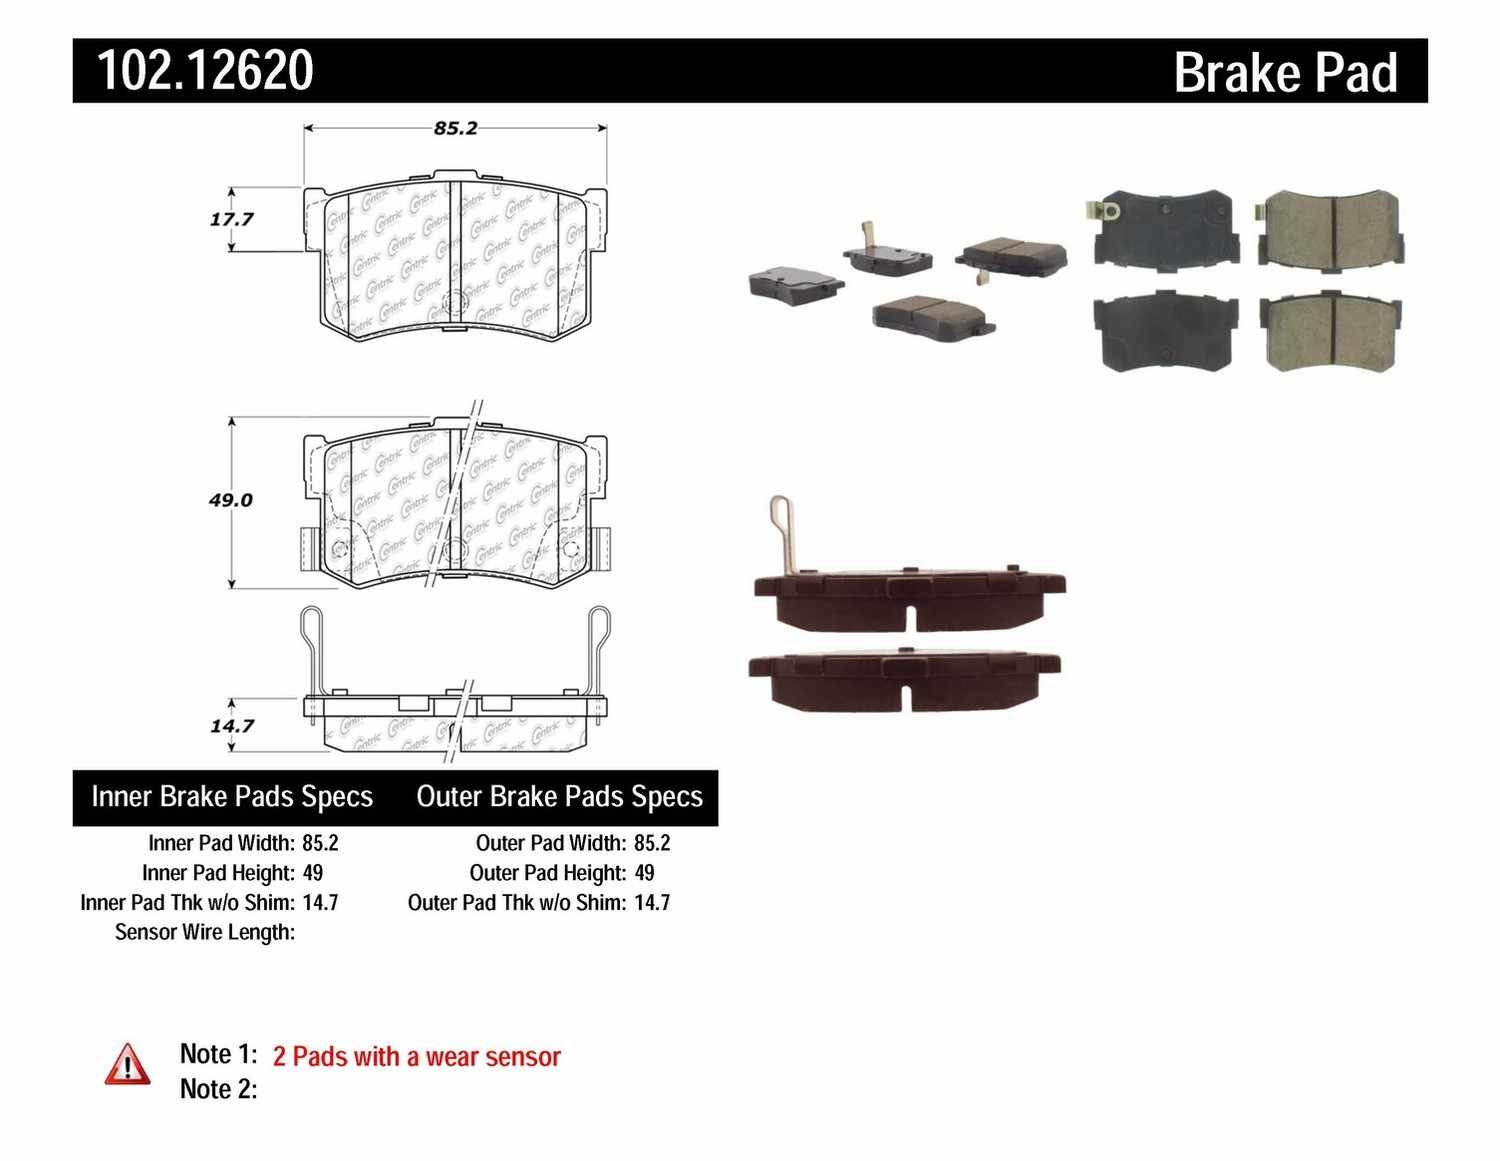 C-TEK BY CENTRIC - C-TEK Metallic Brake Pads (Rear) - CTK 102.12620